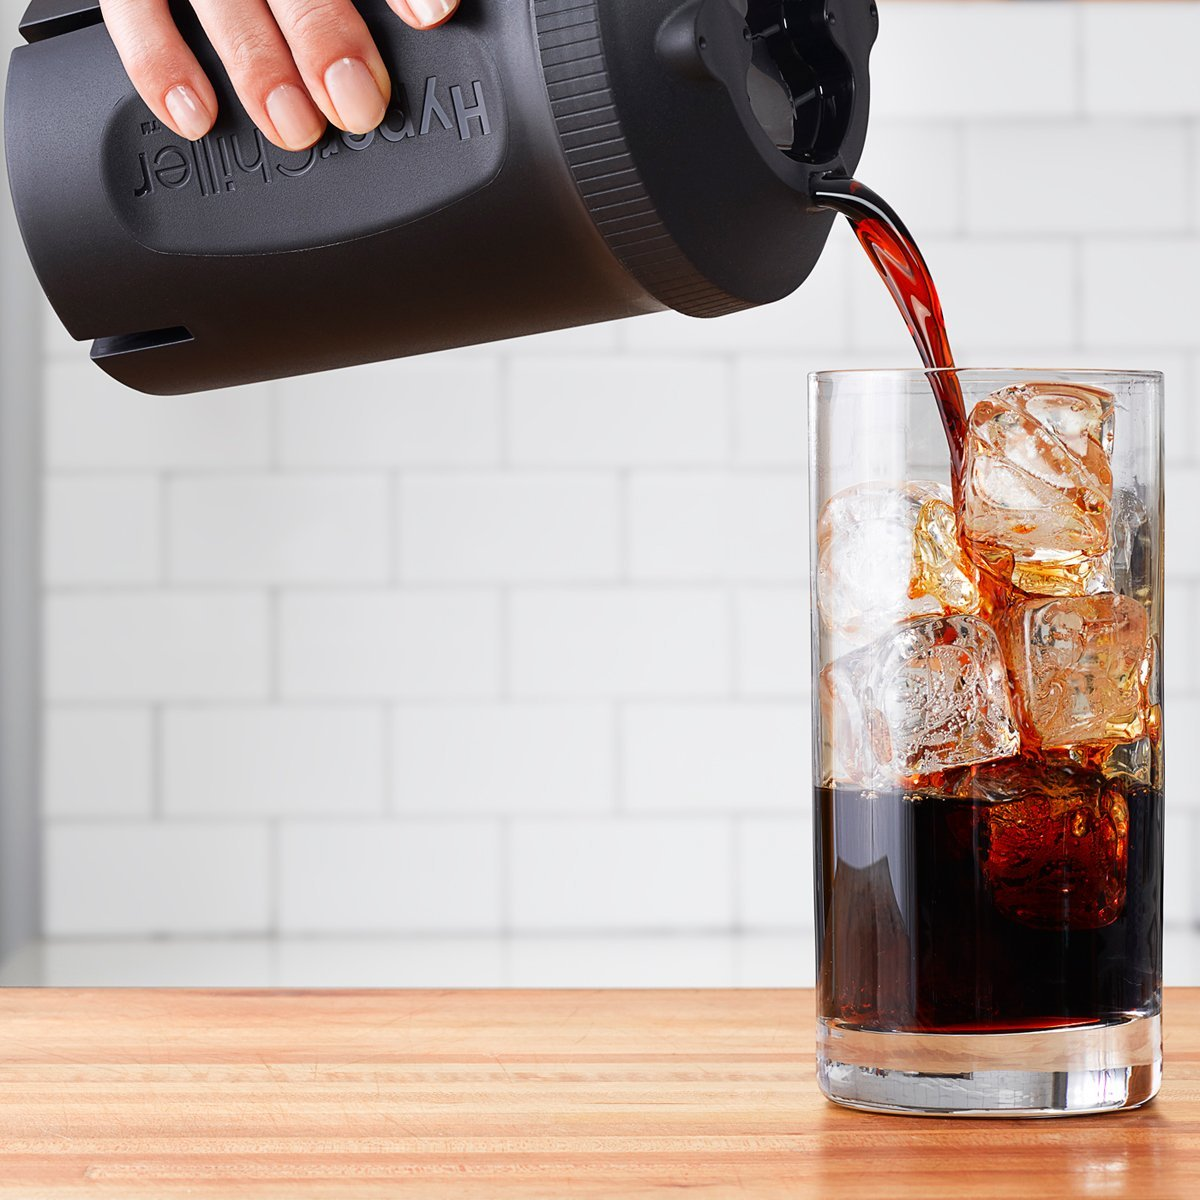 This Coffee Cooling Device Will Save You a Fortune